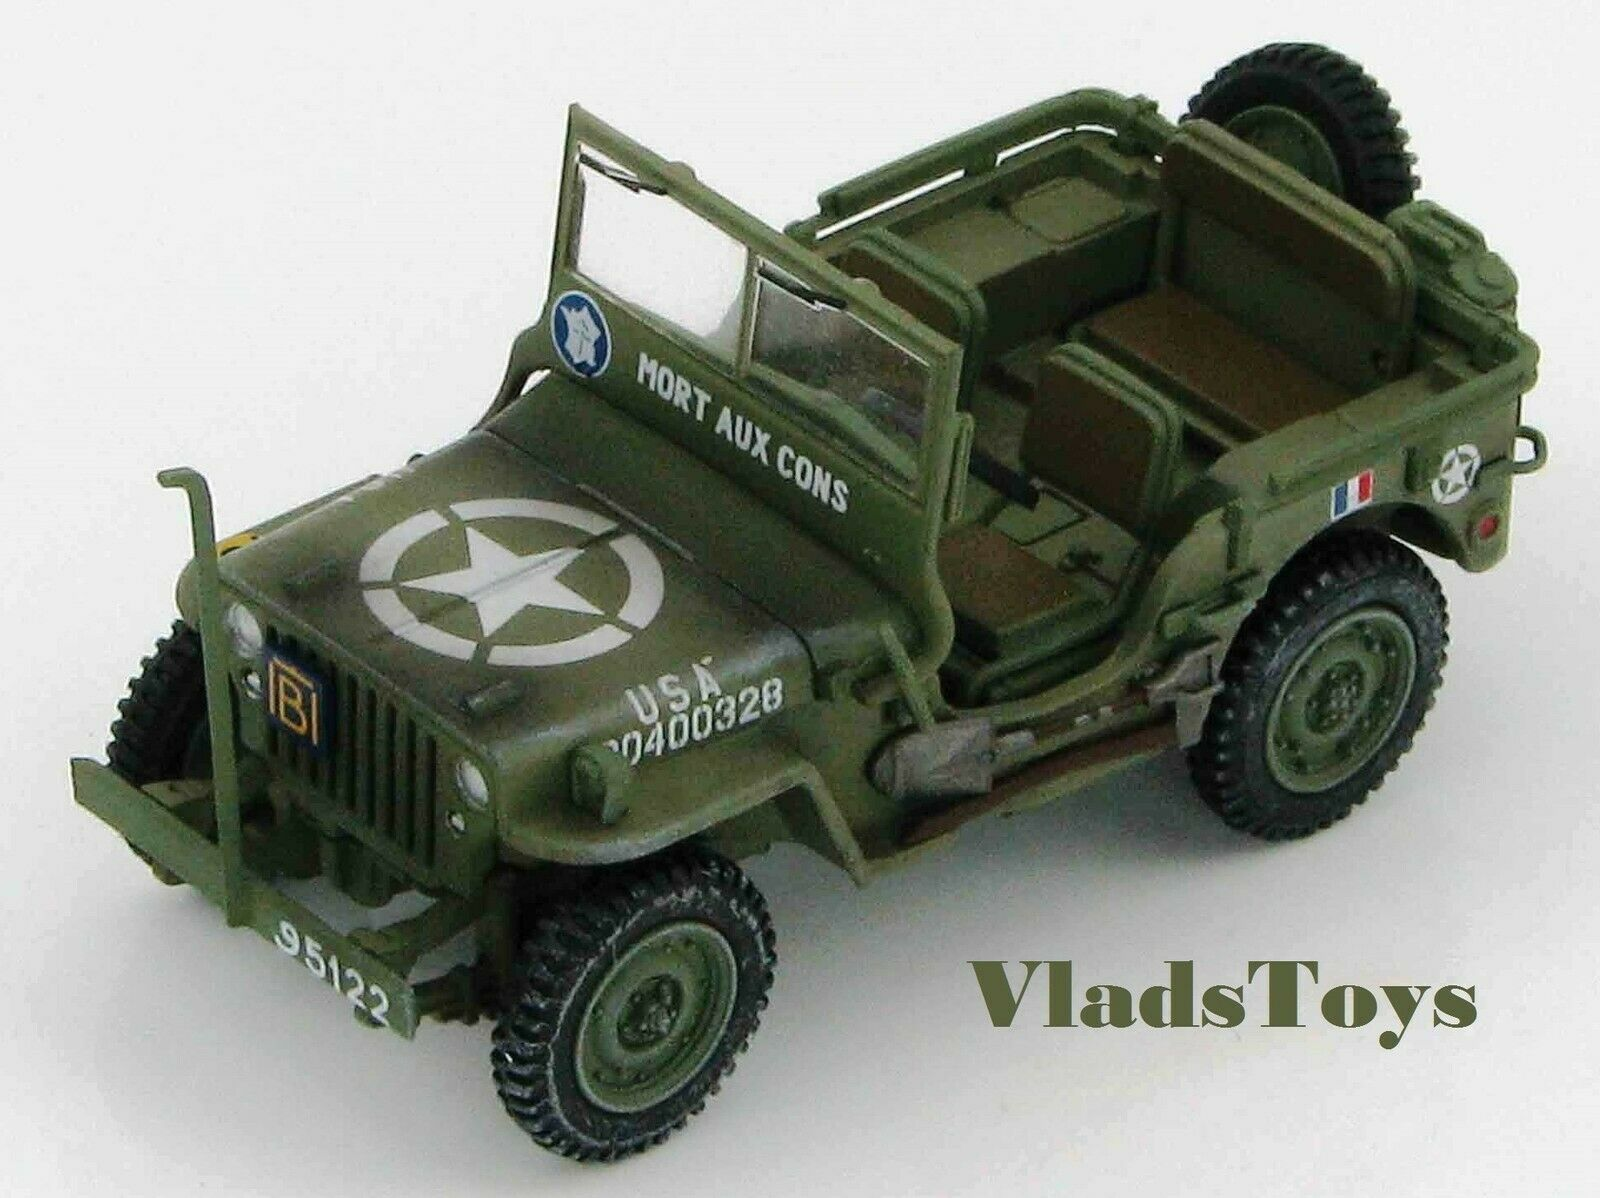 Hobby Master 1 48 Willys Jeep French Army  Mort Aux Cons  Europe 1944 HG1609